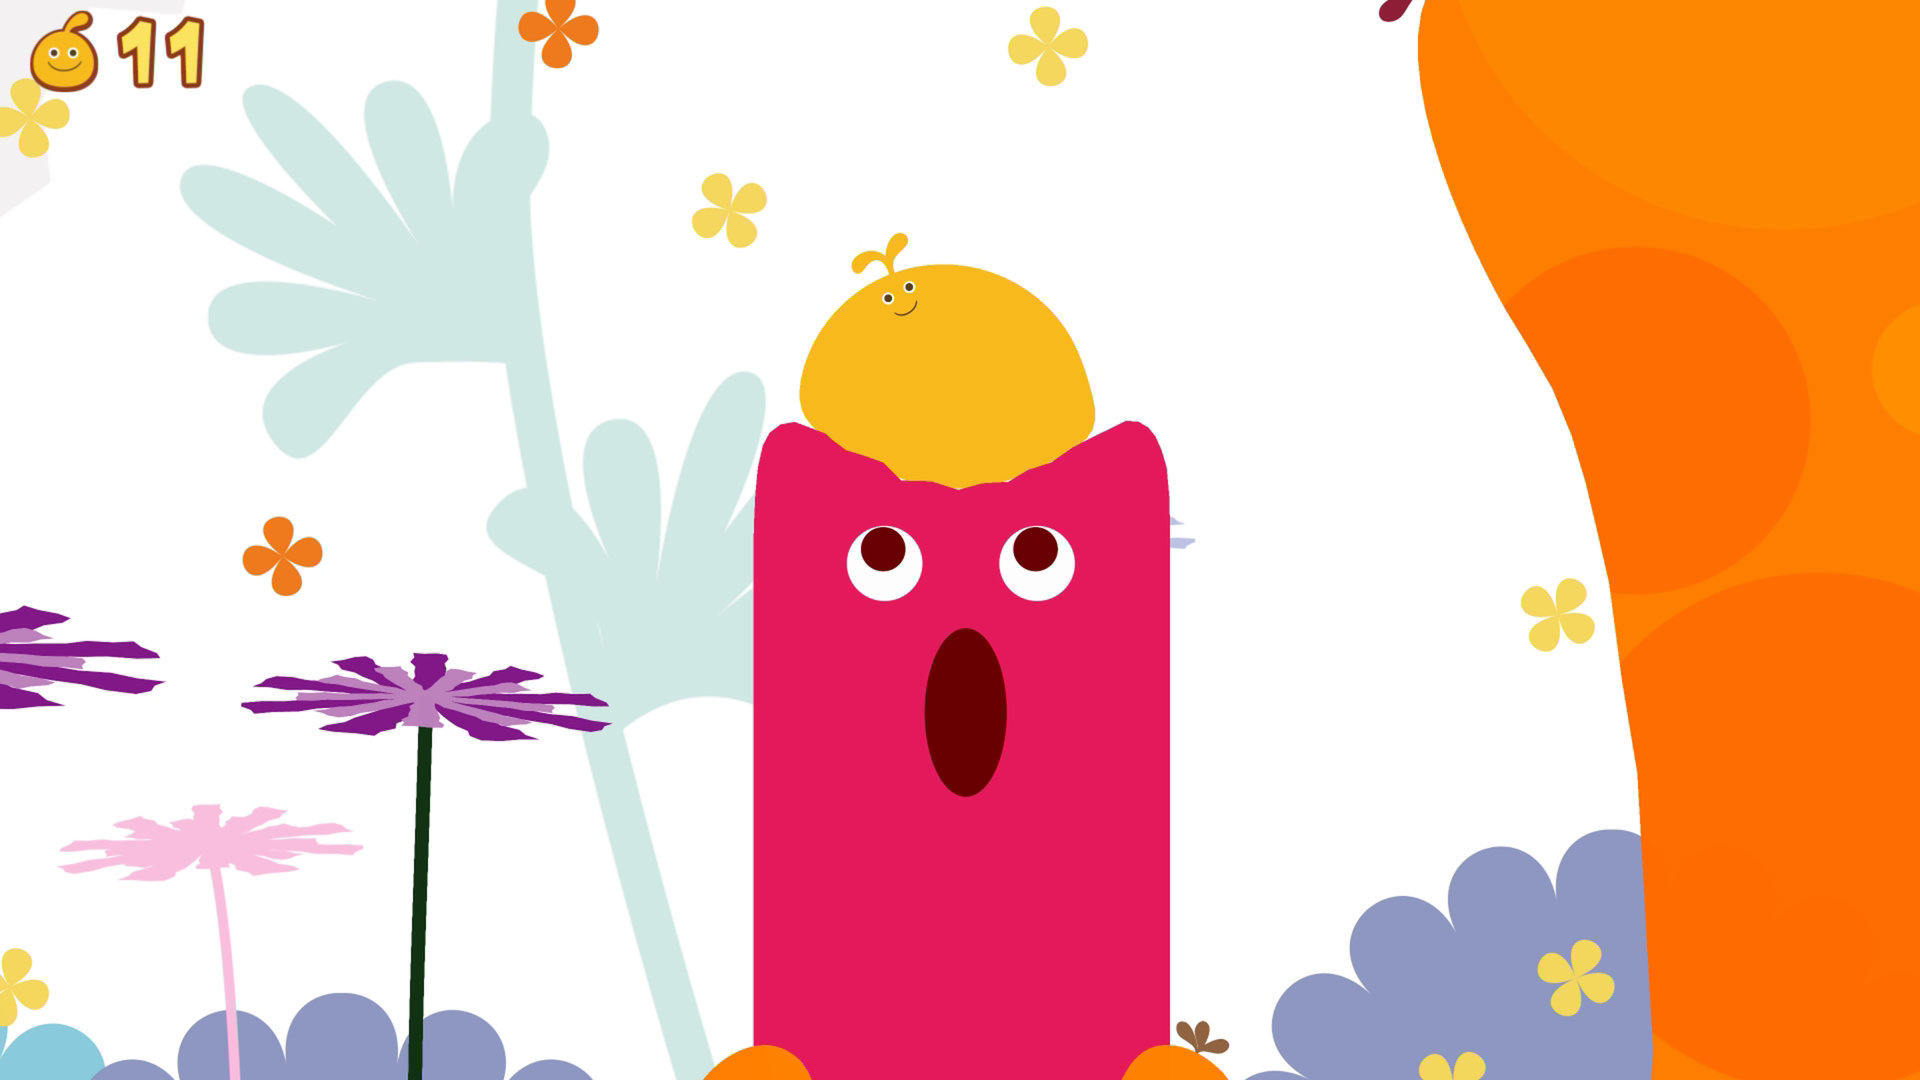 locoroco-remastered-screen-04-ps4-us-02m